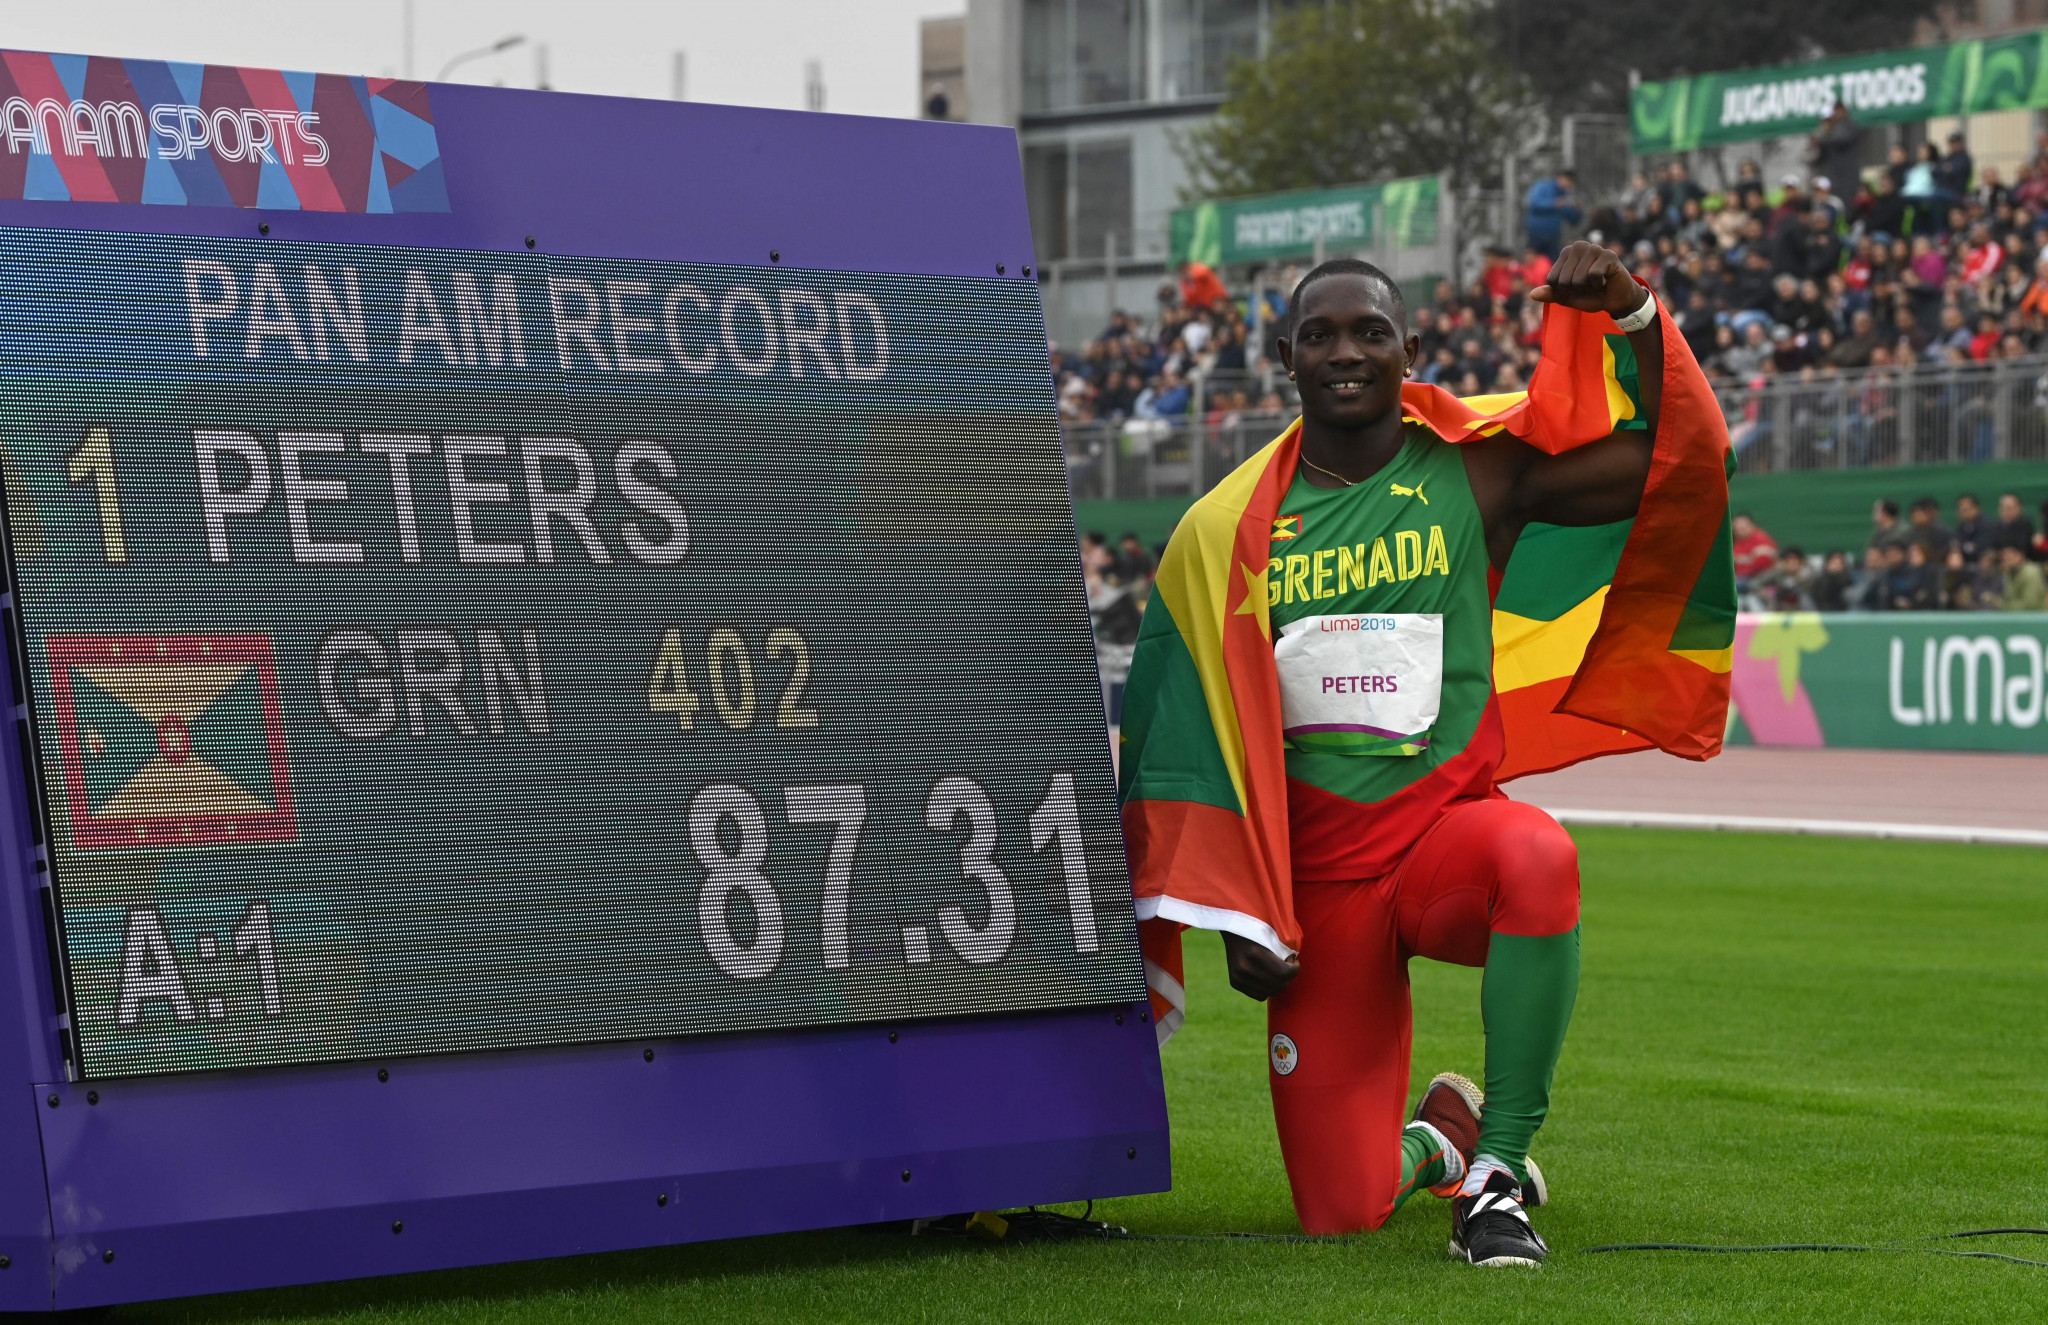 Grenada's Anderson Peters won the men's javelin in a Games record ©Getty Images